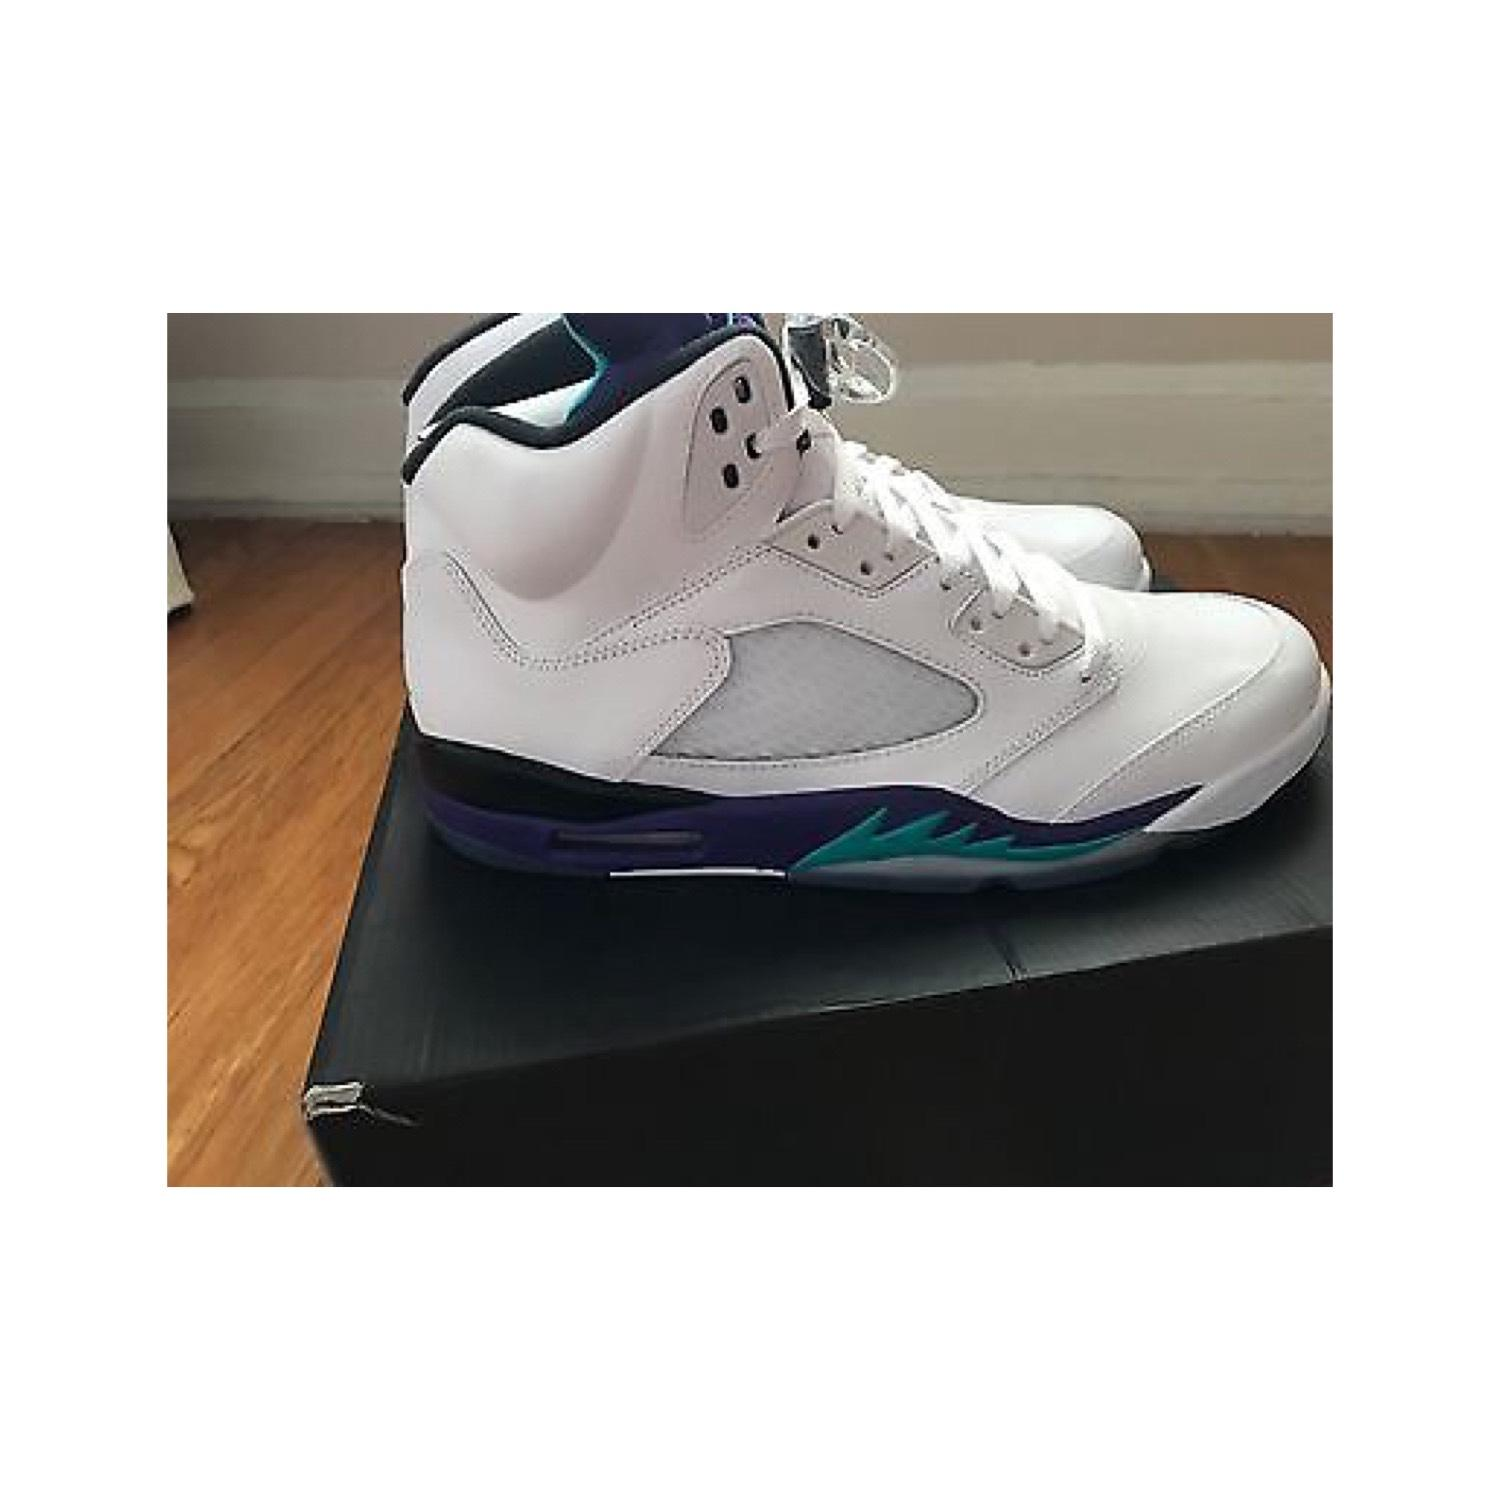 nike air jordan retro 5 raisin blanc les ds baskets taille 12 5 retro 7f4230